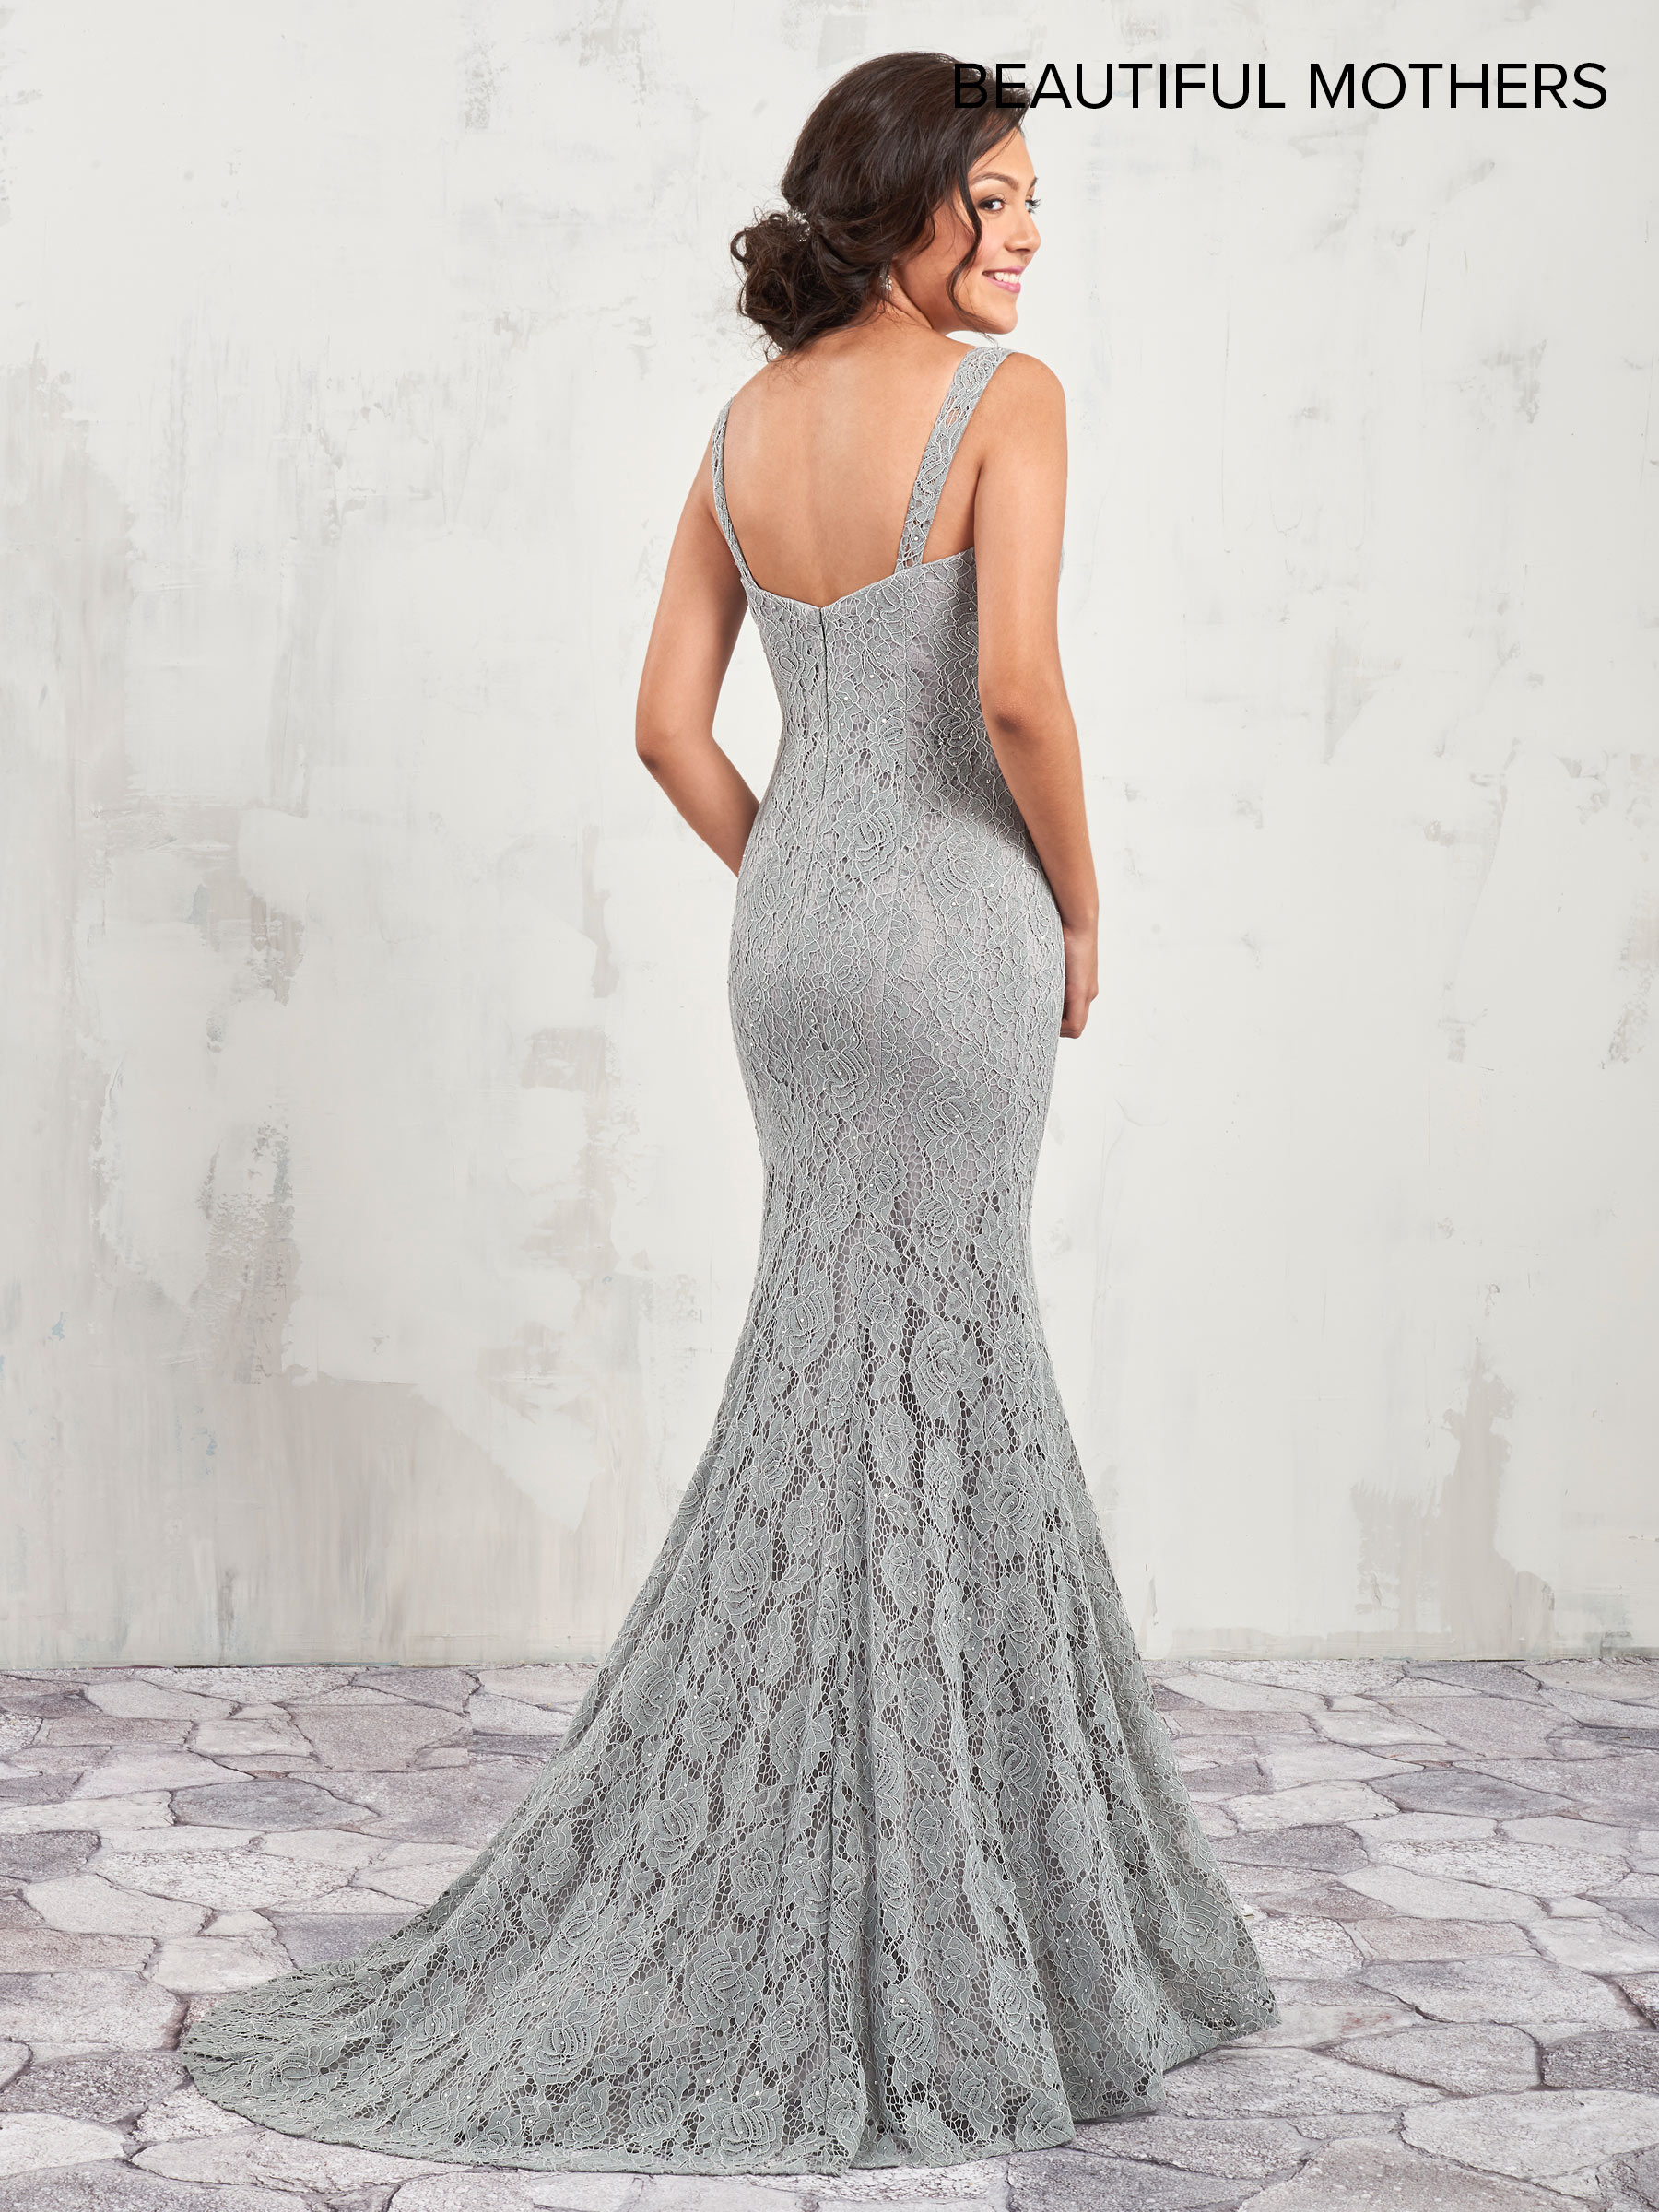 Mother Of The Bride Dresses | Beautiful Mothers | Style - MB8008